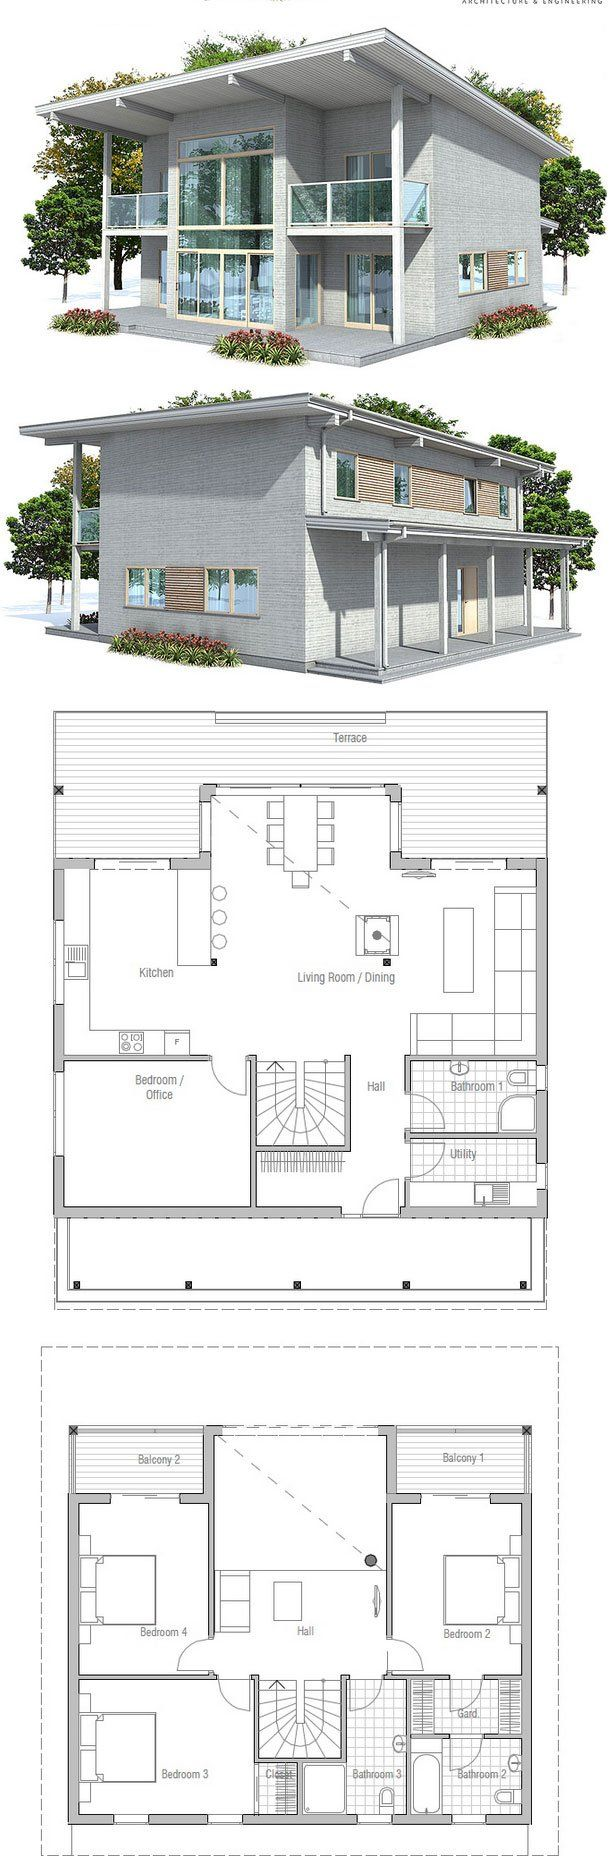 Small House Plan With Small Building Area. Small Home Design With Open  Planning. Floorplans